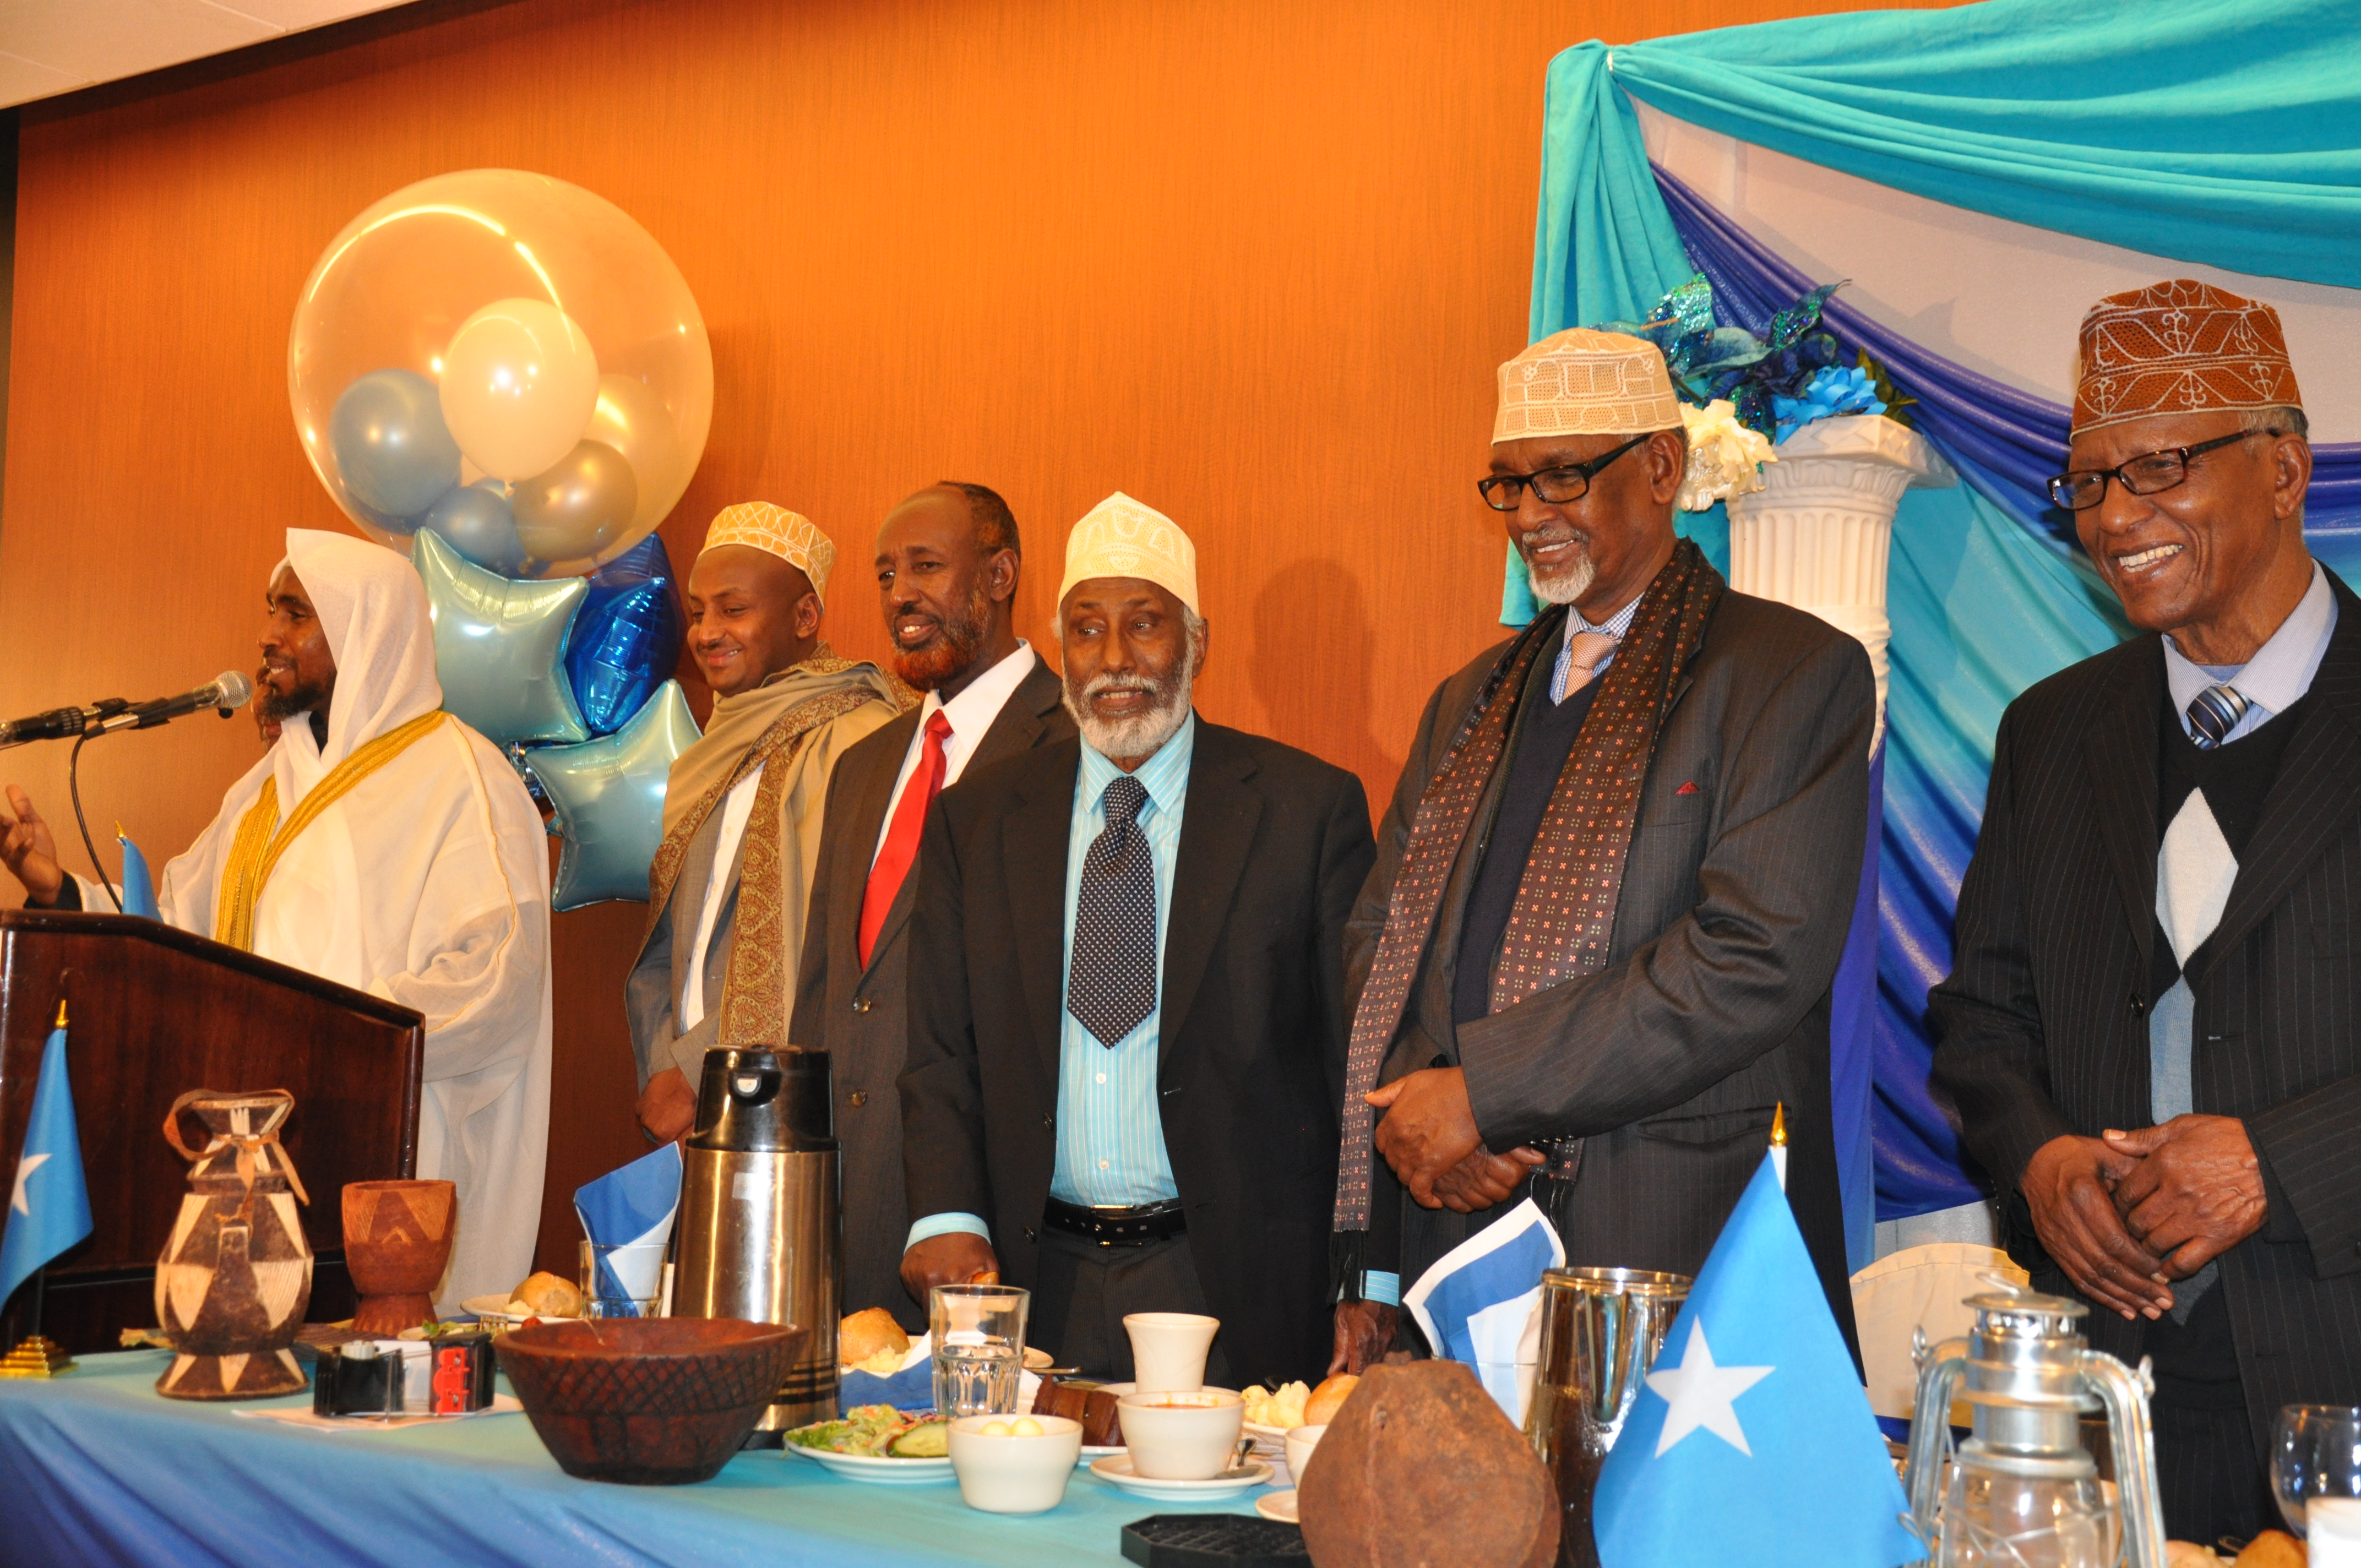 King Burhan Musa flanked by Somali elders at the Ramada in Minneapolis. Photo: Issa Mansray/The AfricaPaper